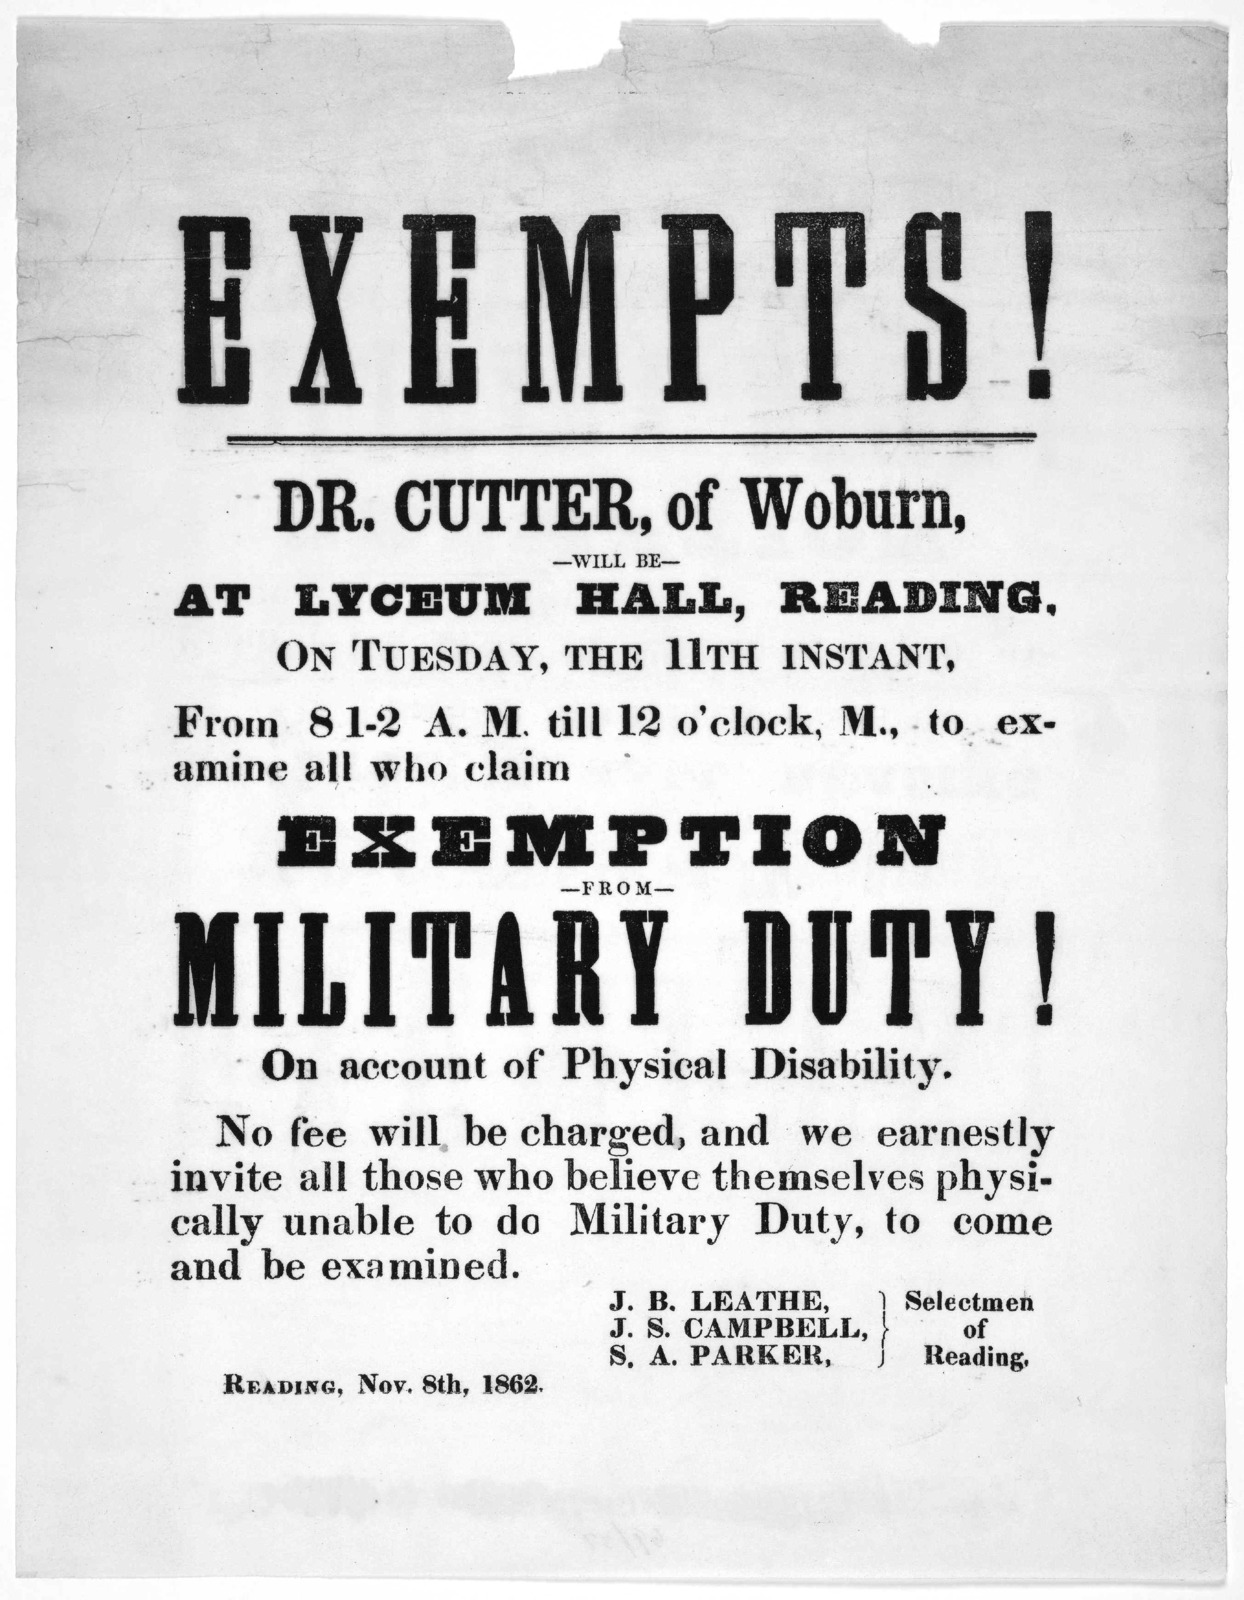 Exempts! Dr. Cutter, of Woburn, will be at Lyceum Hall, Reading, on Tuesday, the 11th instant, from 8 1-2 A. M. till 12 o'clock, M., to examine all who claim exemption from military duty! on account of physical disability ... Selectmen of Readin